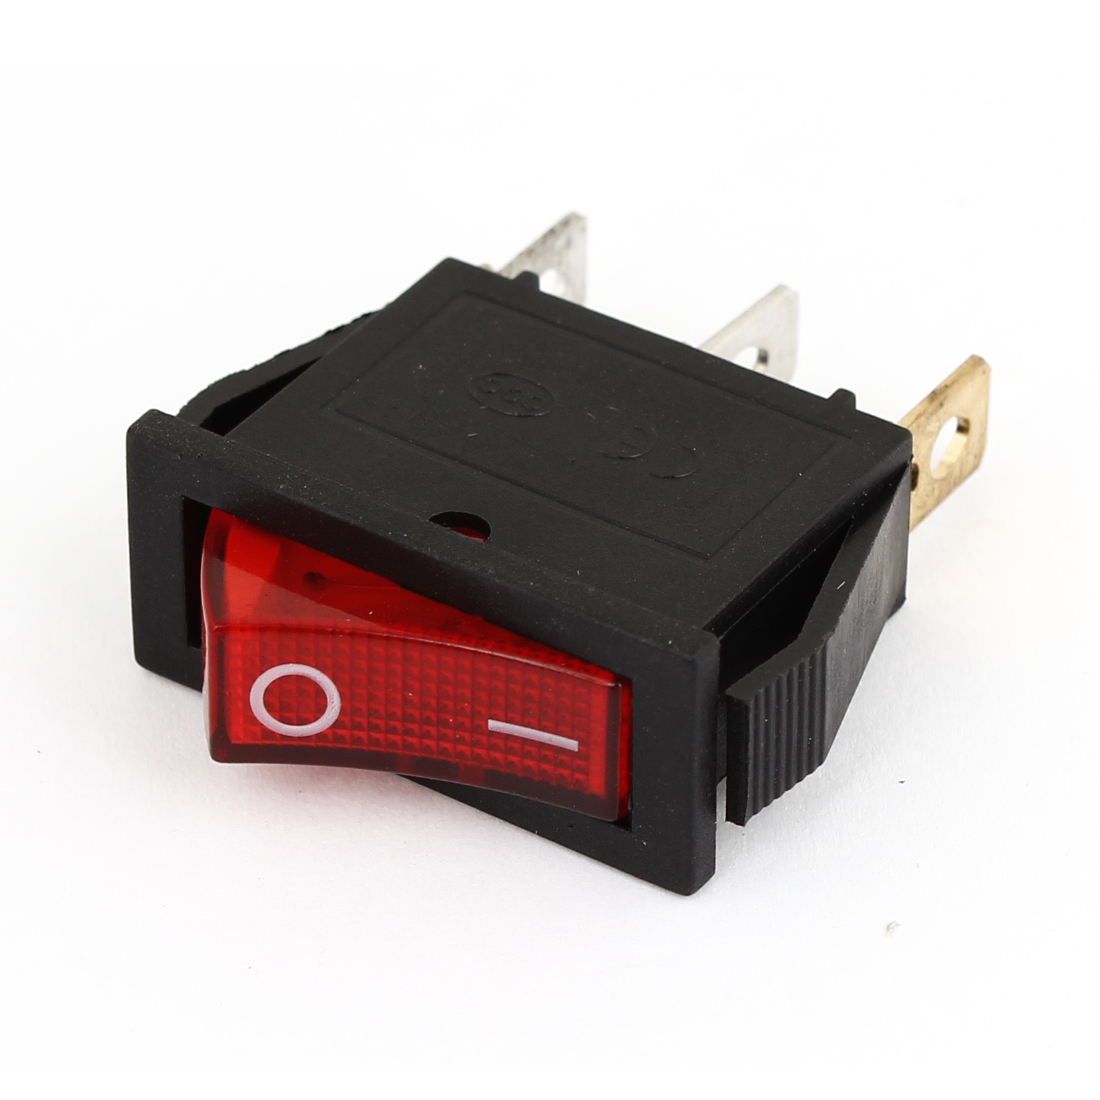 AC 15A/250V 20A/125V 3 Pin 2 Position Red LED Light ON/OFF Rocker Switch KCD3